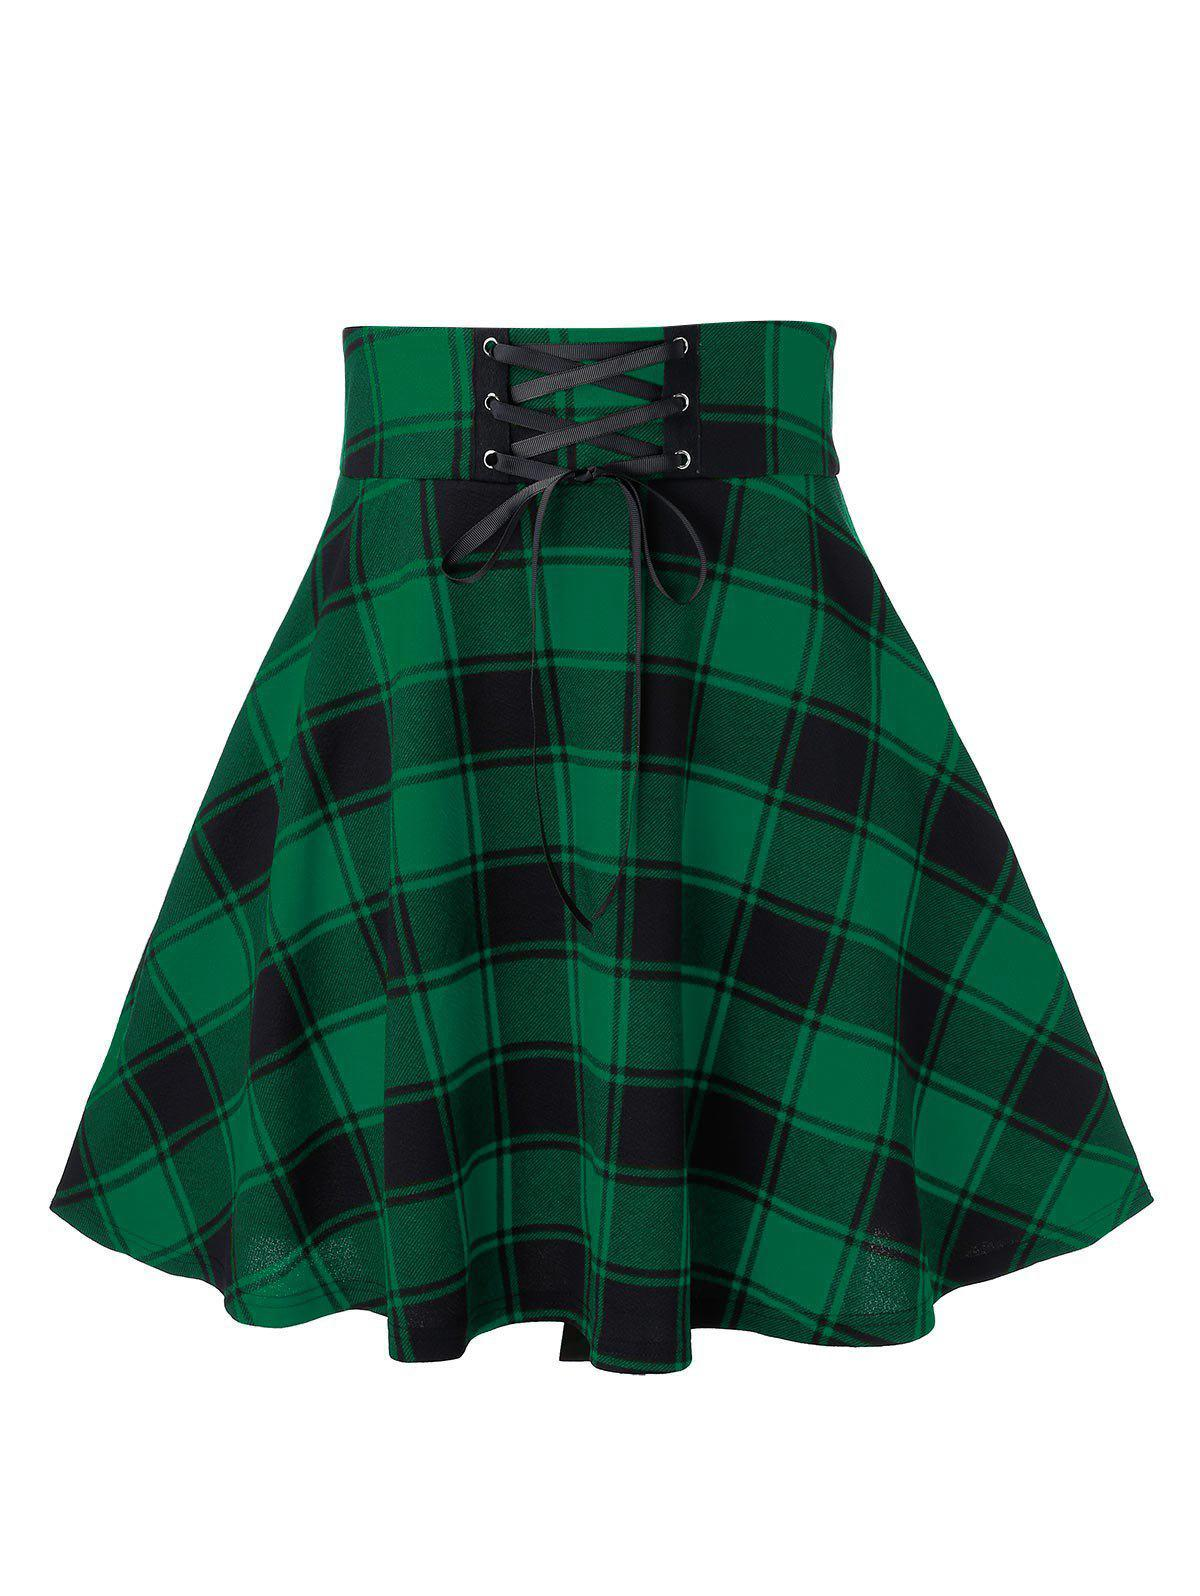 Store Plus Size Plaid Lace Up A Line Skirt